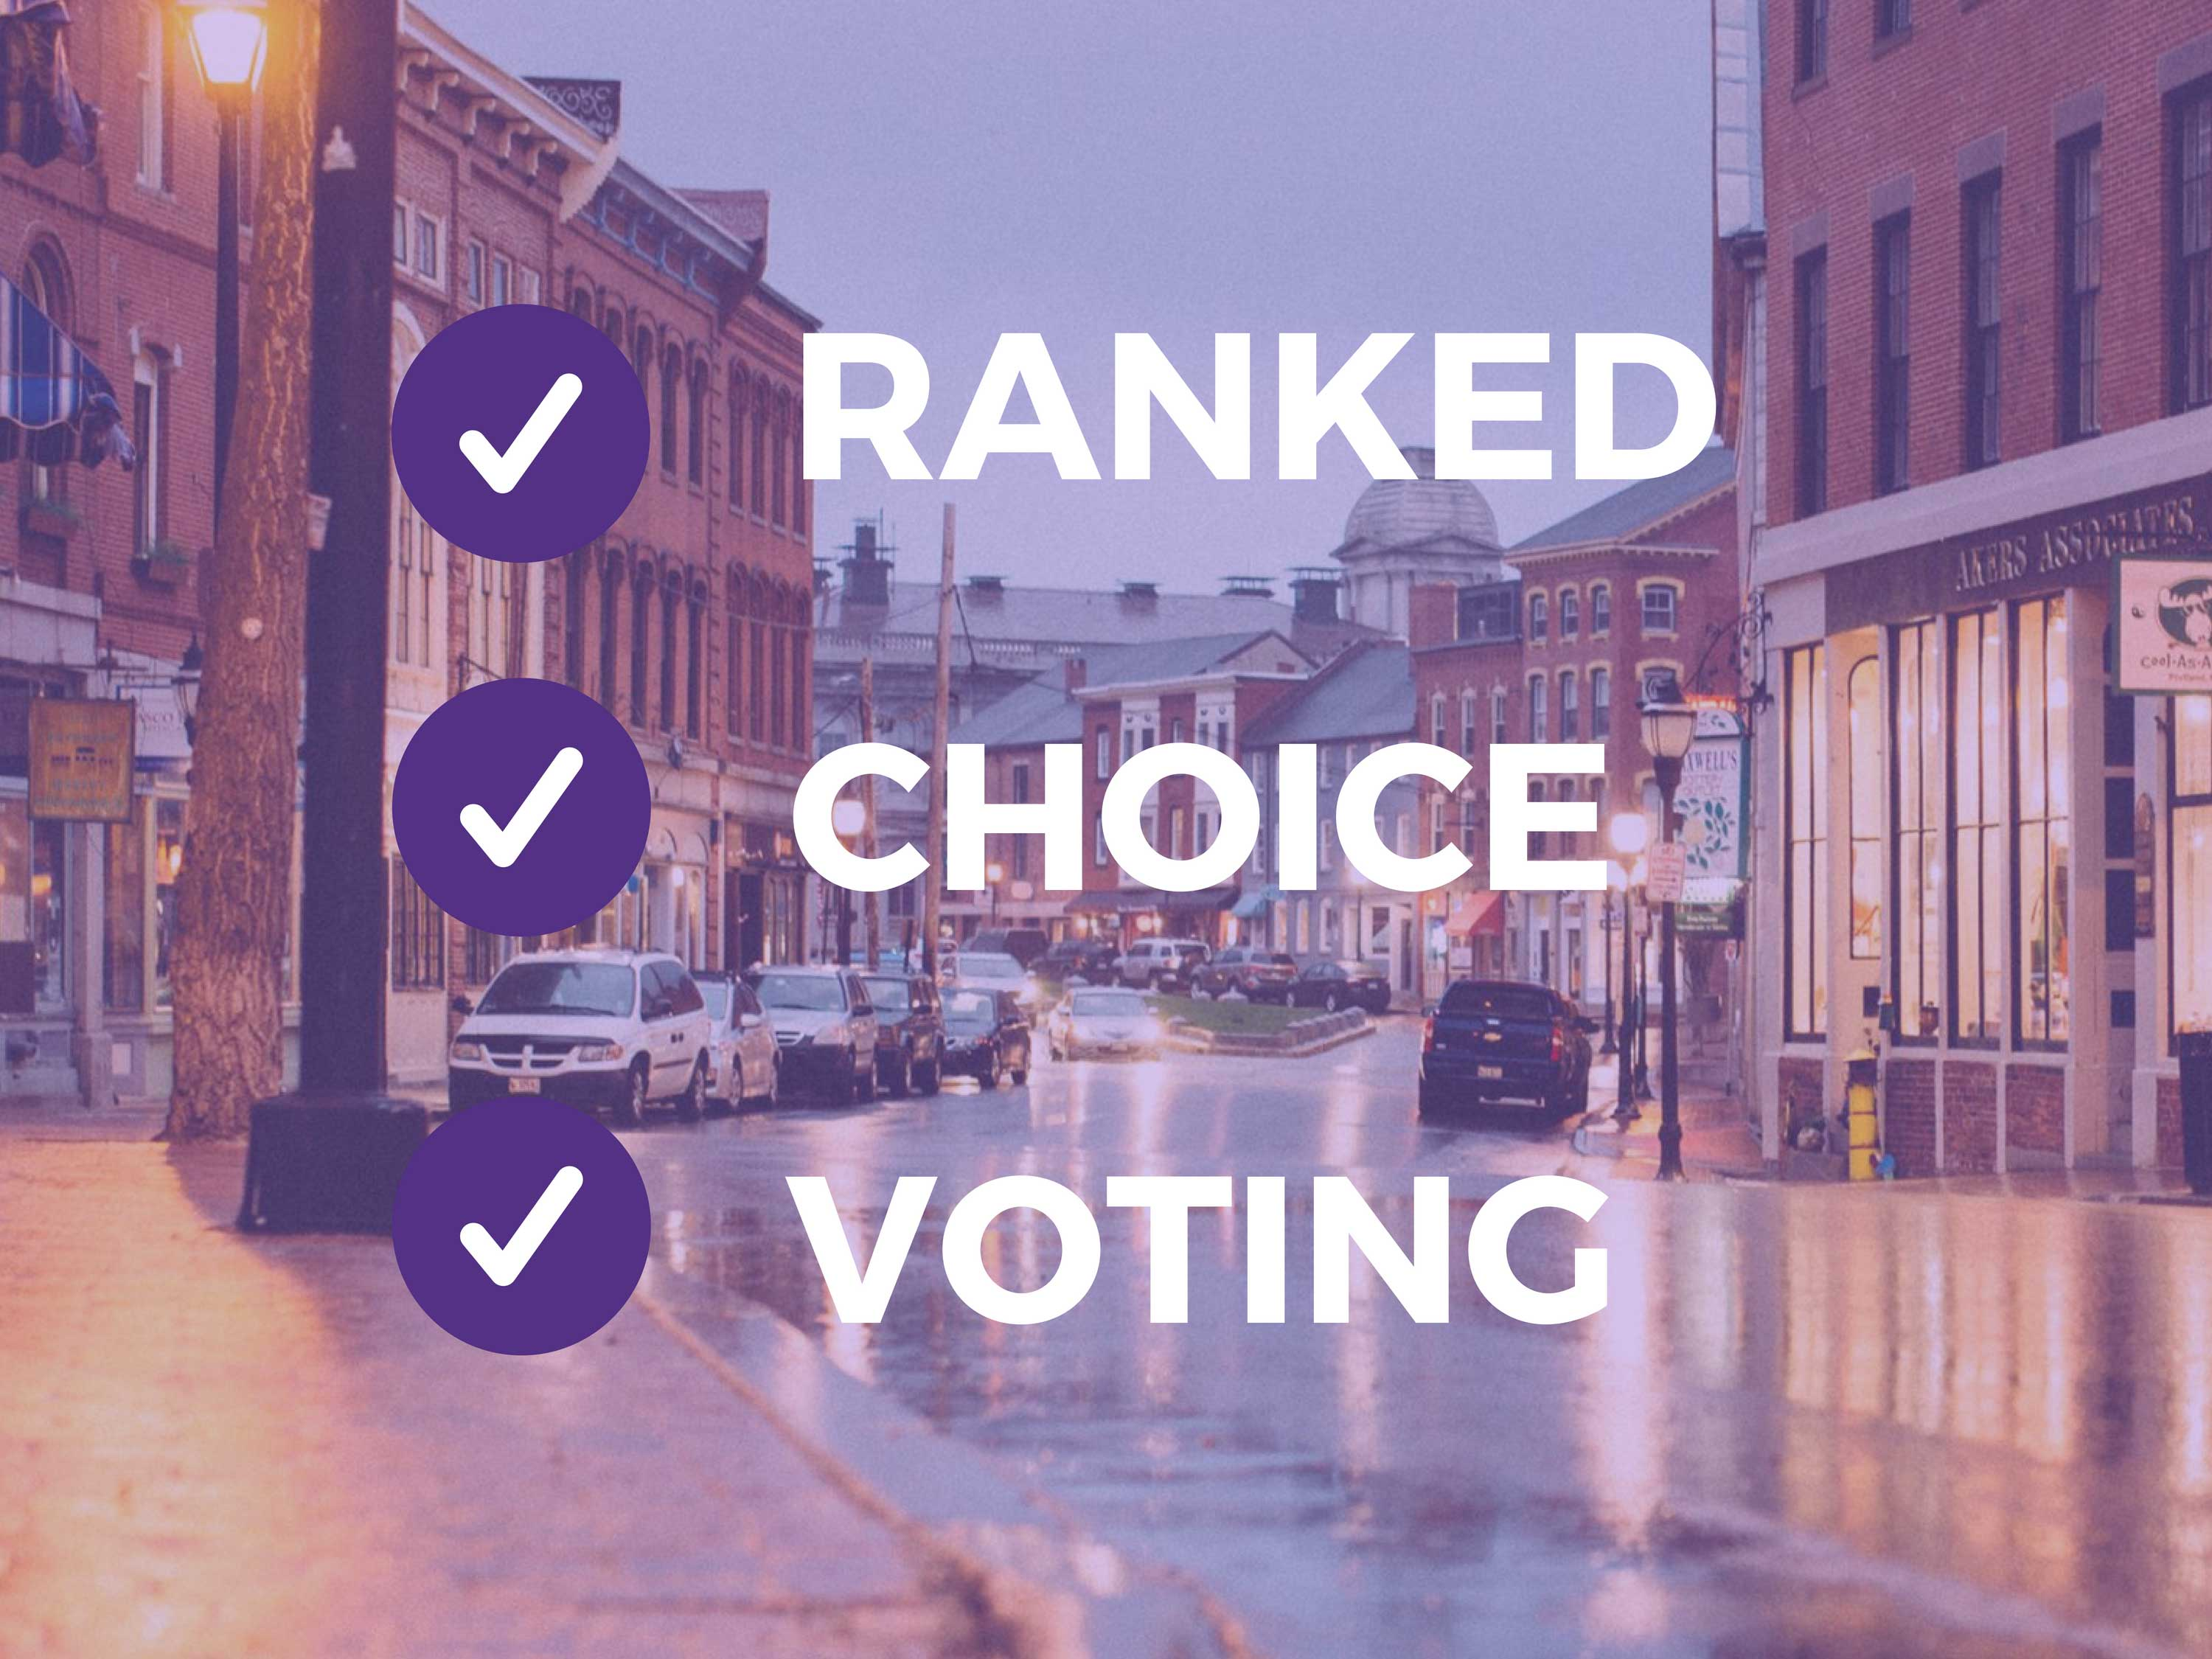 Maine's 1st ranked choice voting election: clear winners, trouble free